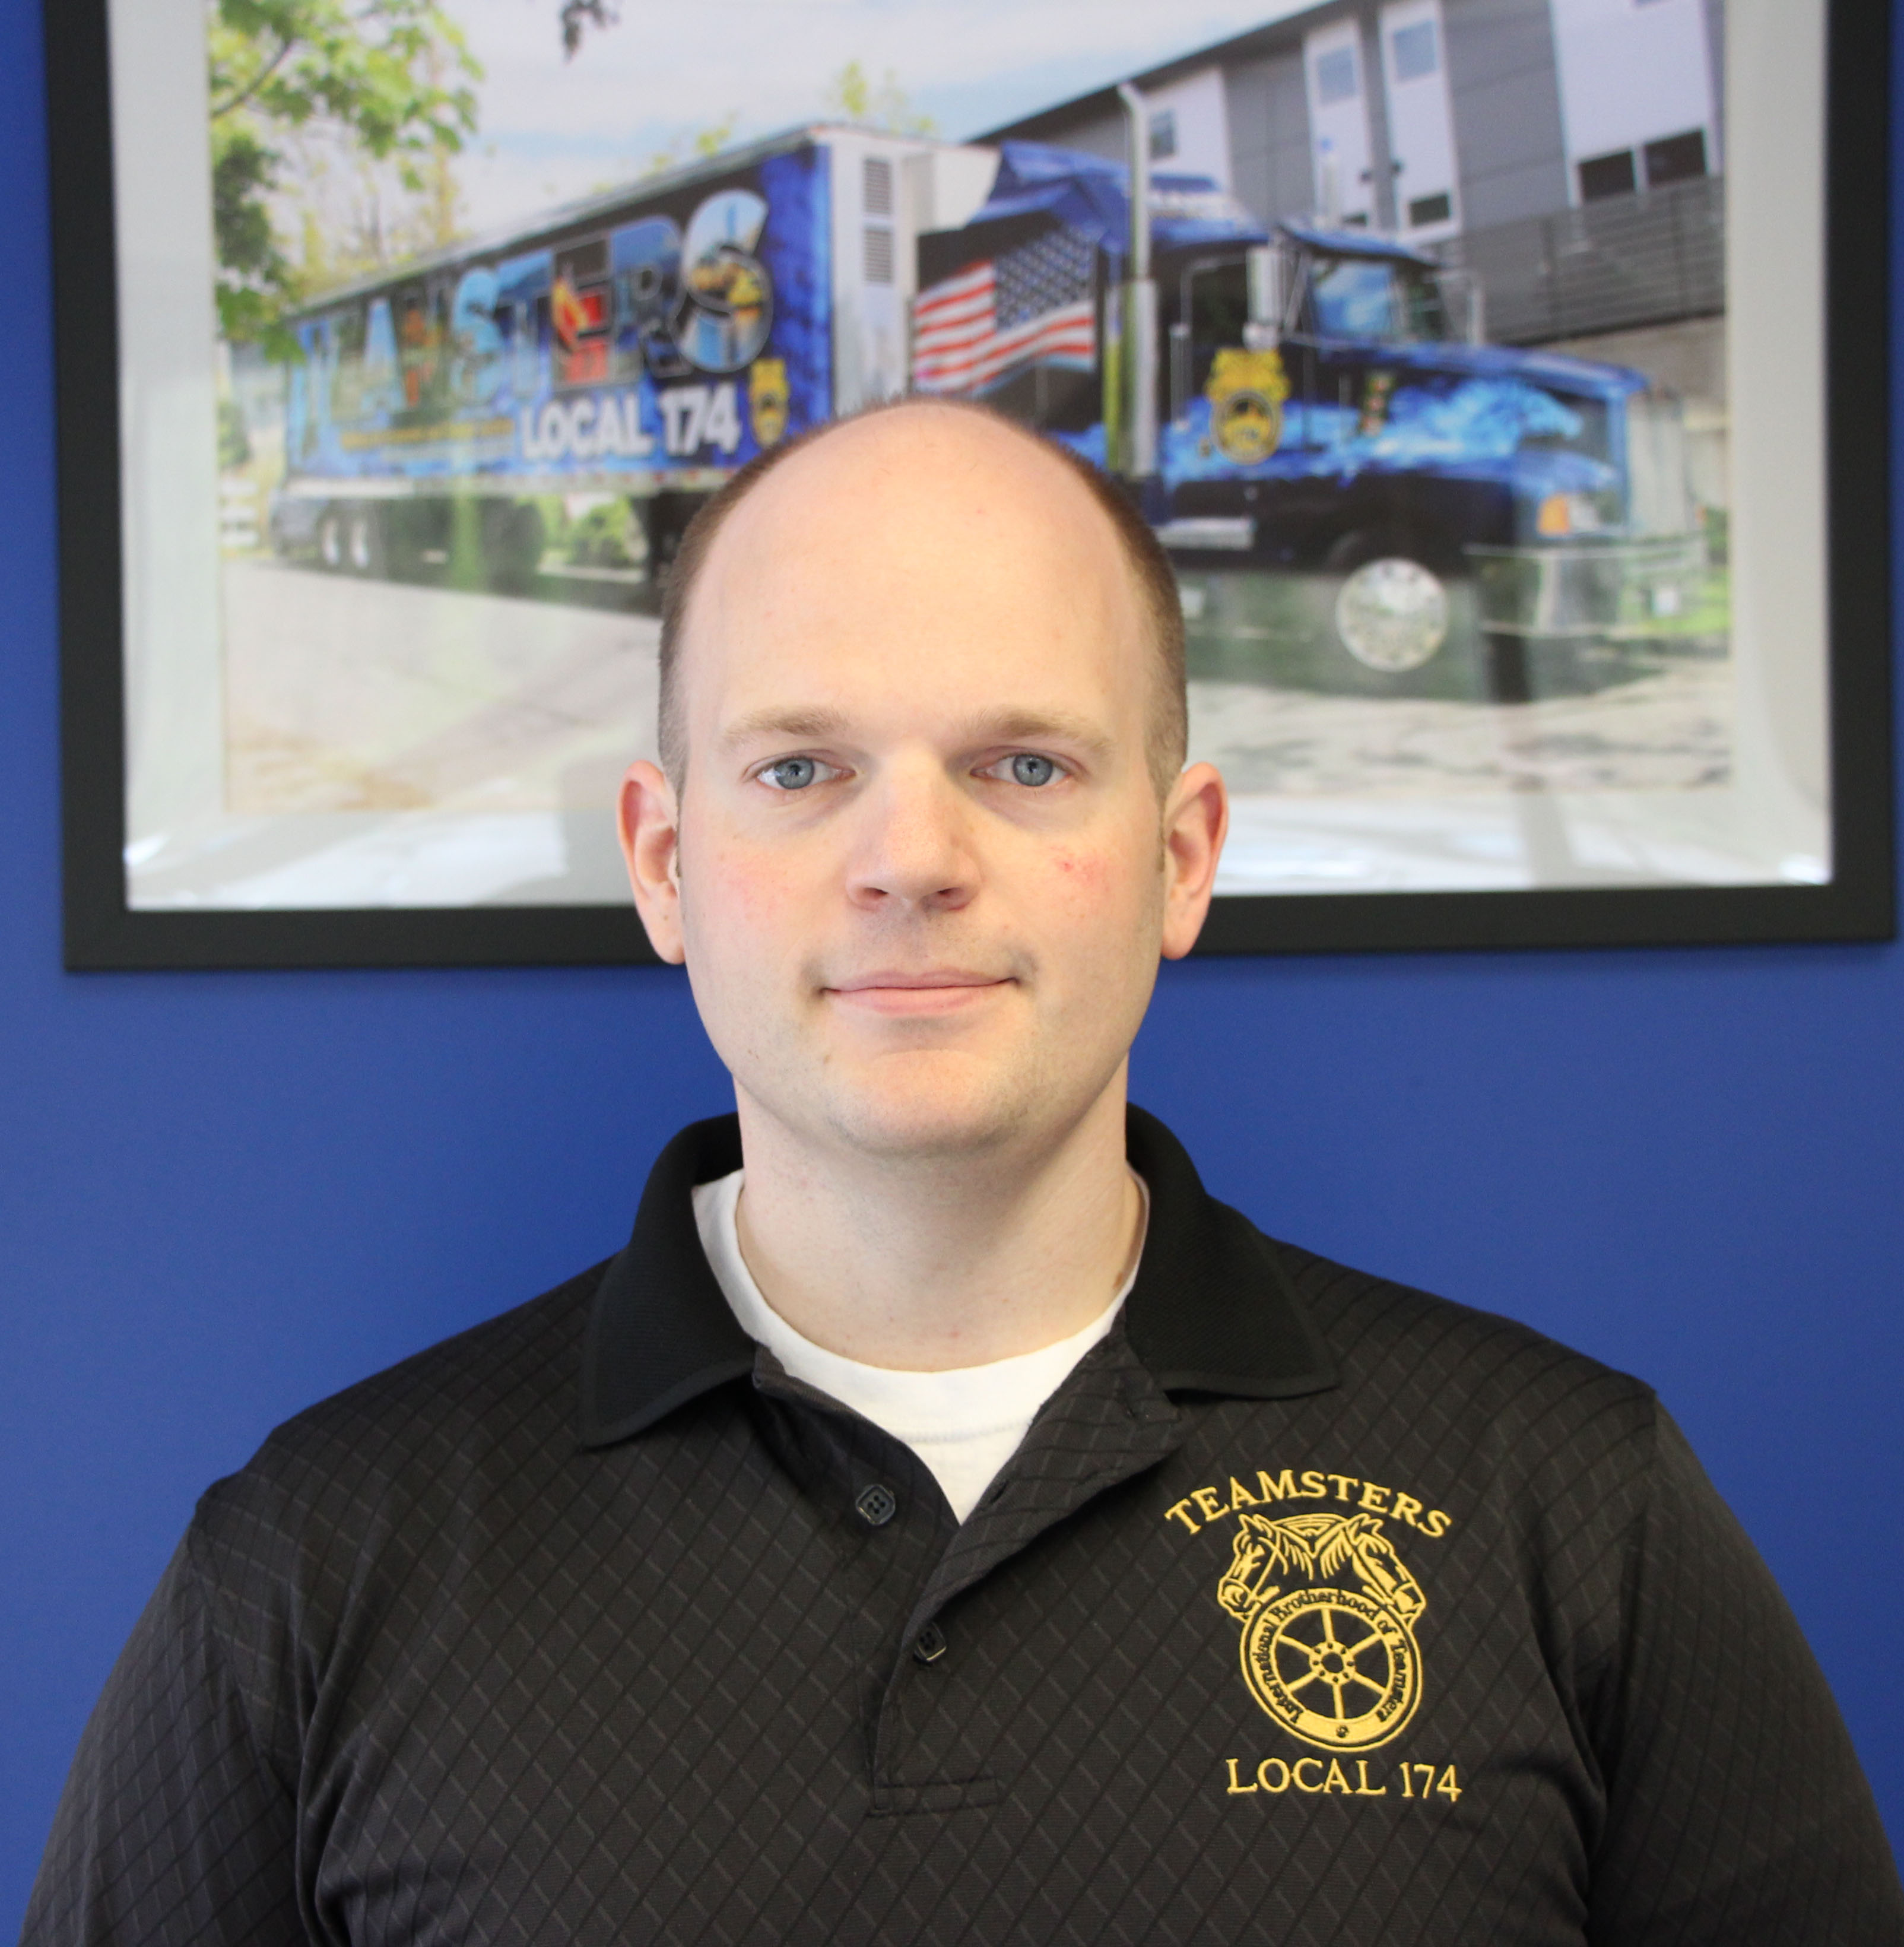 078f17ed29f Local 174 is pleased to welcome the newest member of our family  UPS  Business Agent Kris DeBuck. Kris joins us after working at UPS for over ten  years